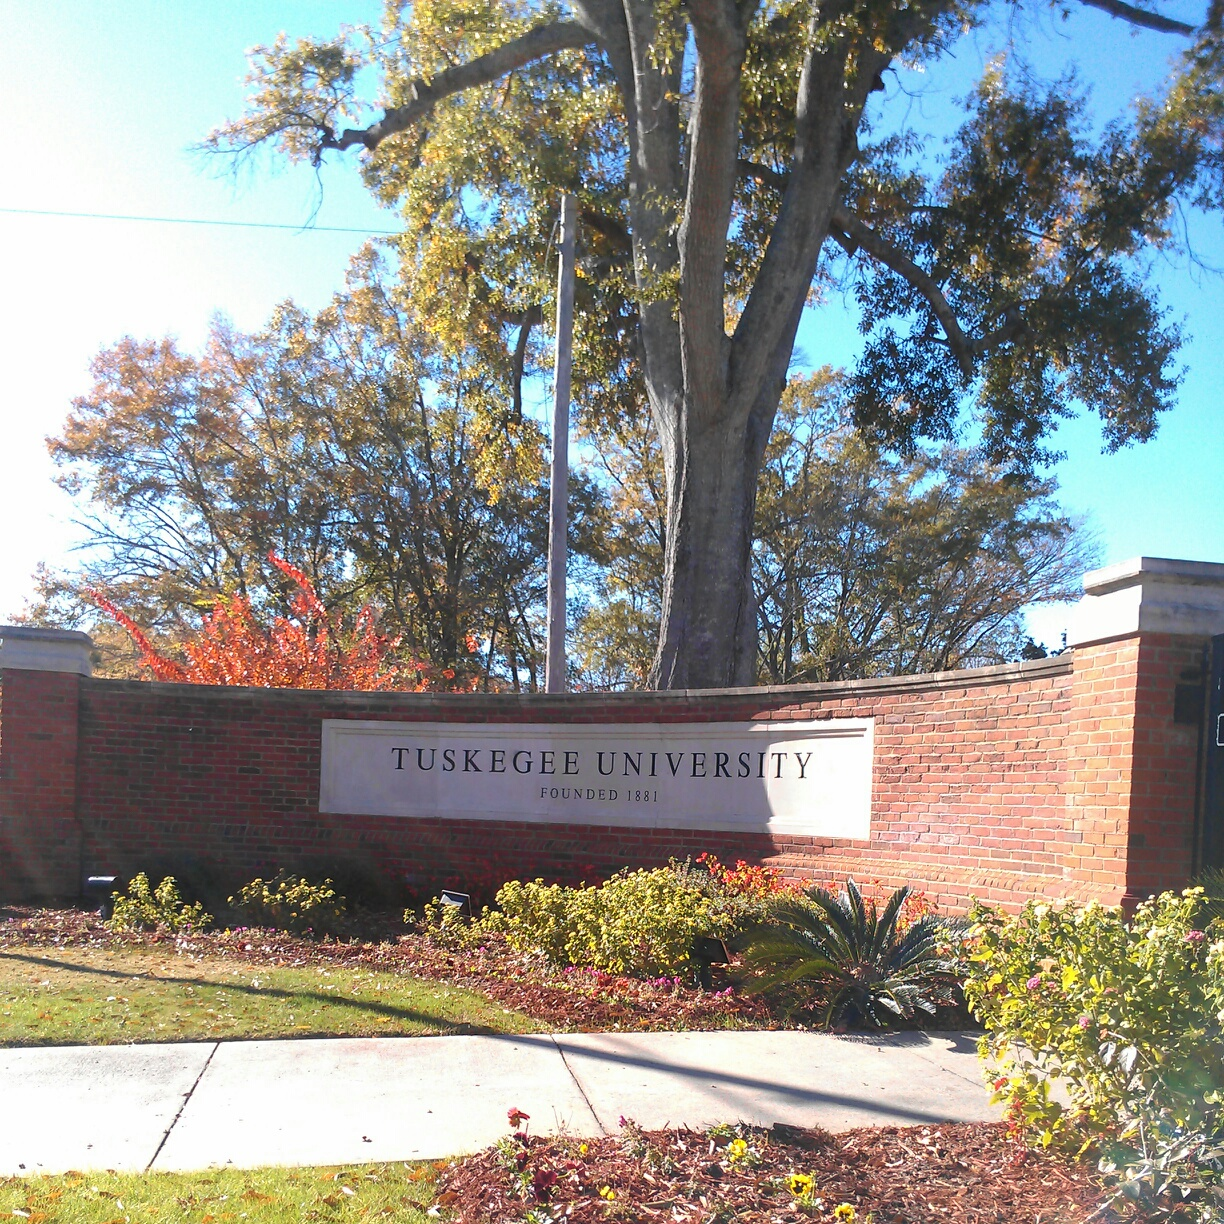 Mother Tuskegee.  My alma mater.